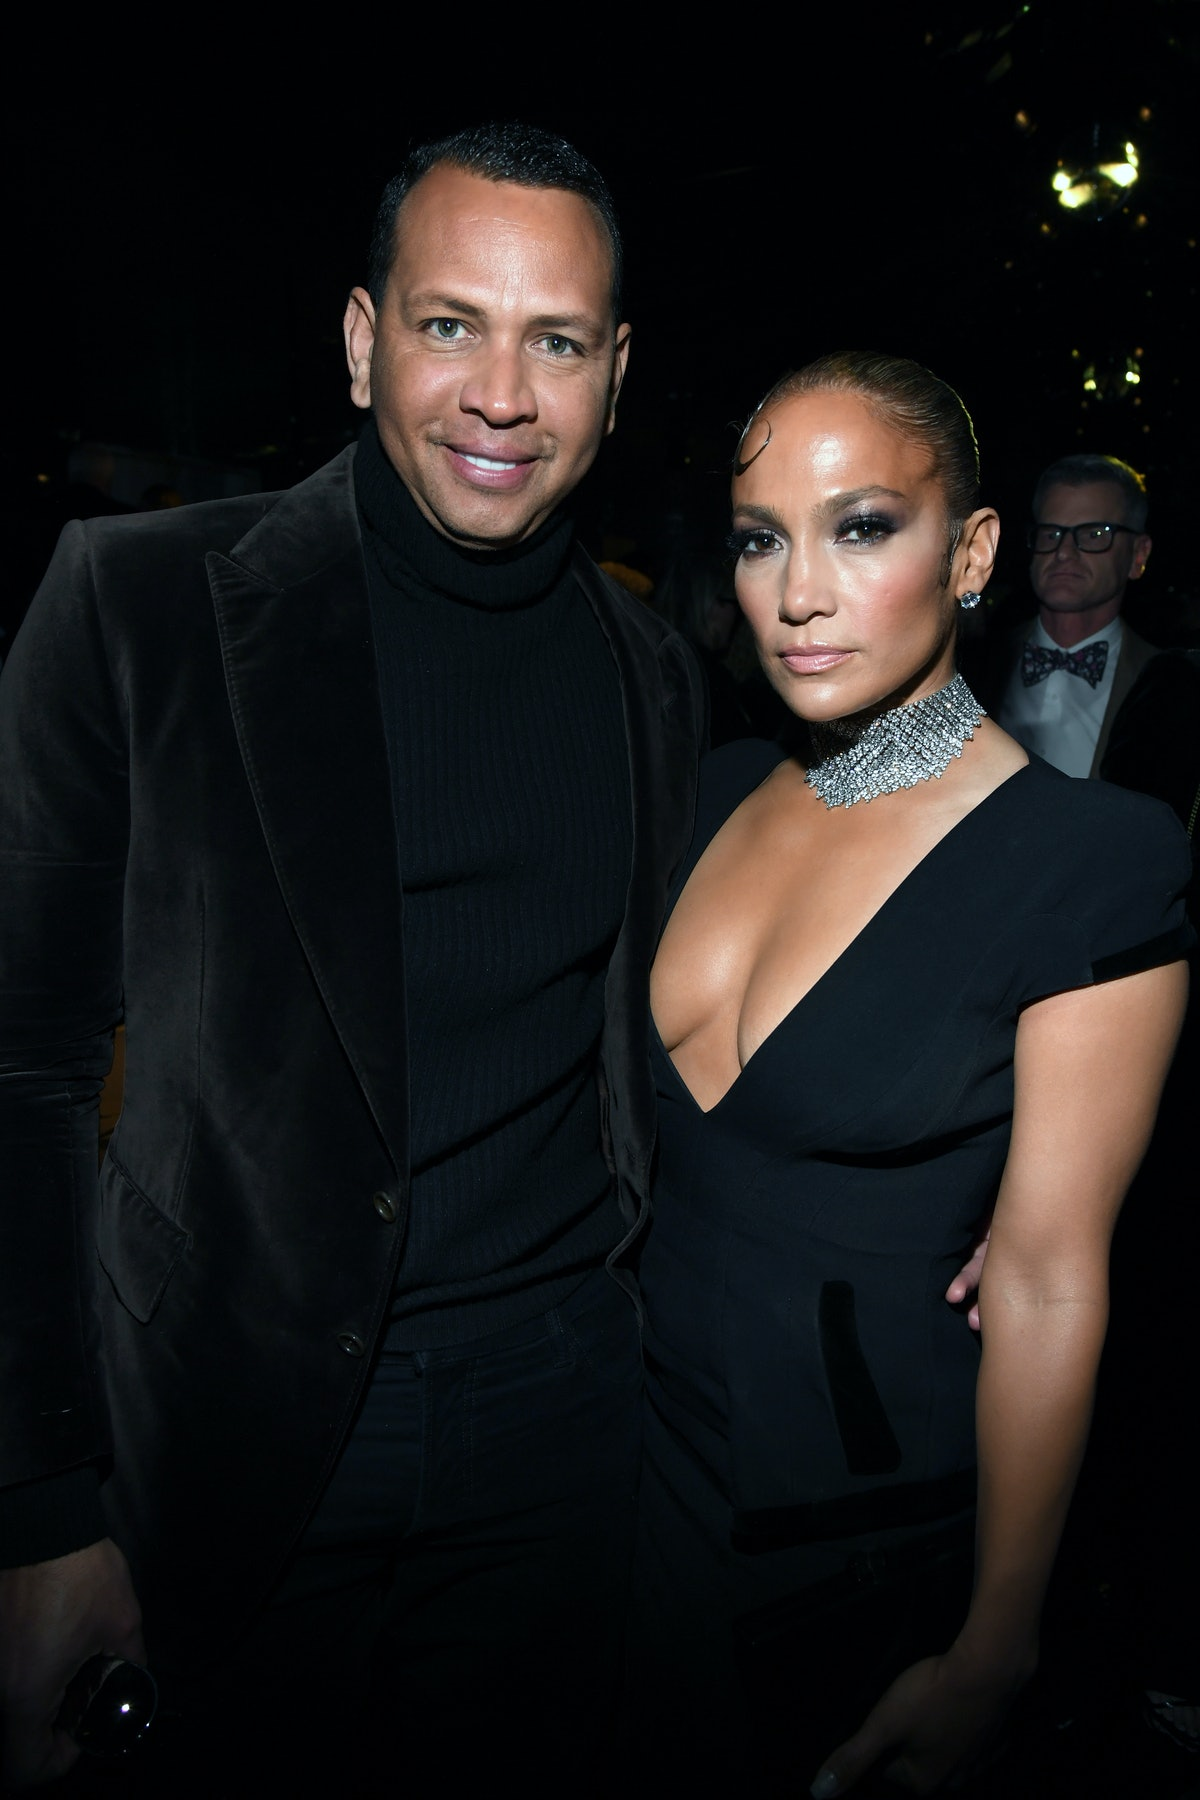 HOLLYWOOD, CALIFORNIA - FEBRUARY 07: (L-R) Alex Rodriguez and Jennifer Lopez attend the Tom Ford AW2...